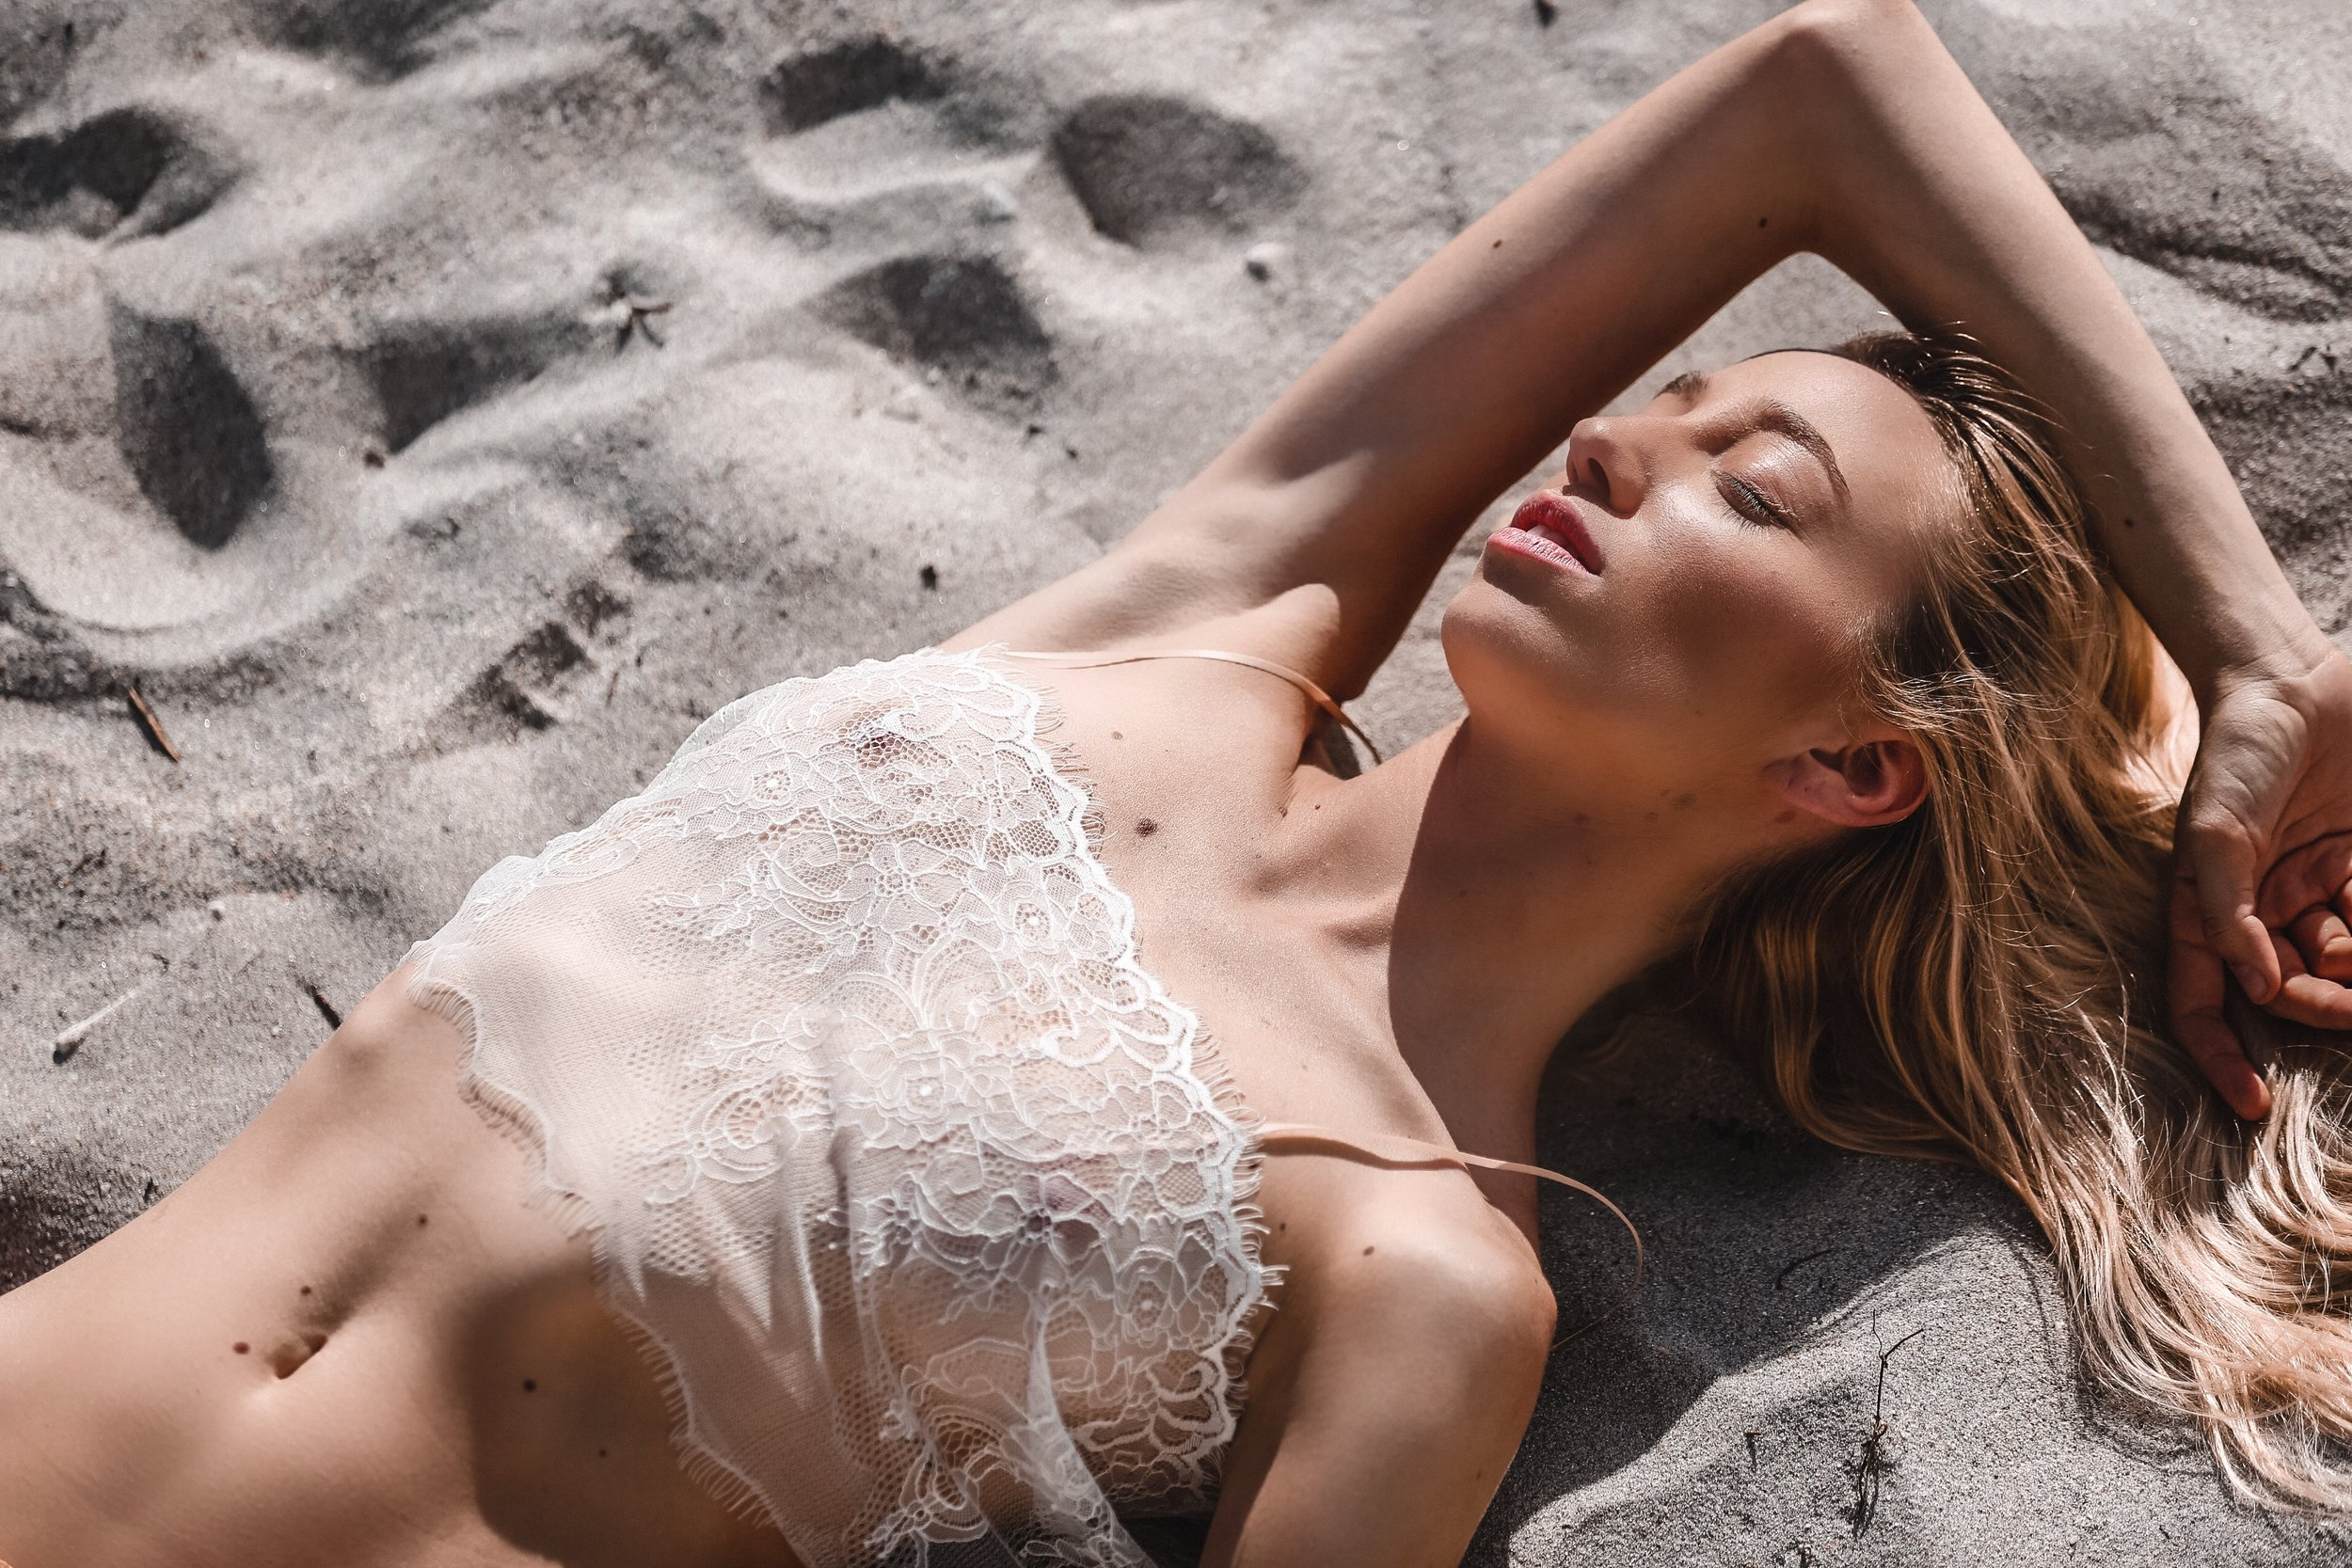 Macy Mariano wears I AM ZAZIE's Après Swim sheer  Aurora Chantilly Lace Crop Top  in White. Photographed by Drea Off Duty in Miami, Florida.